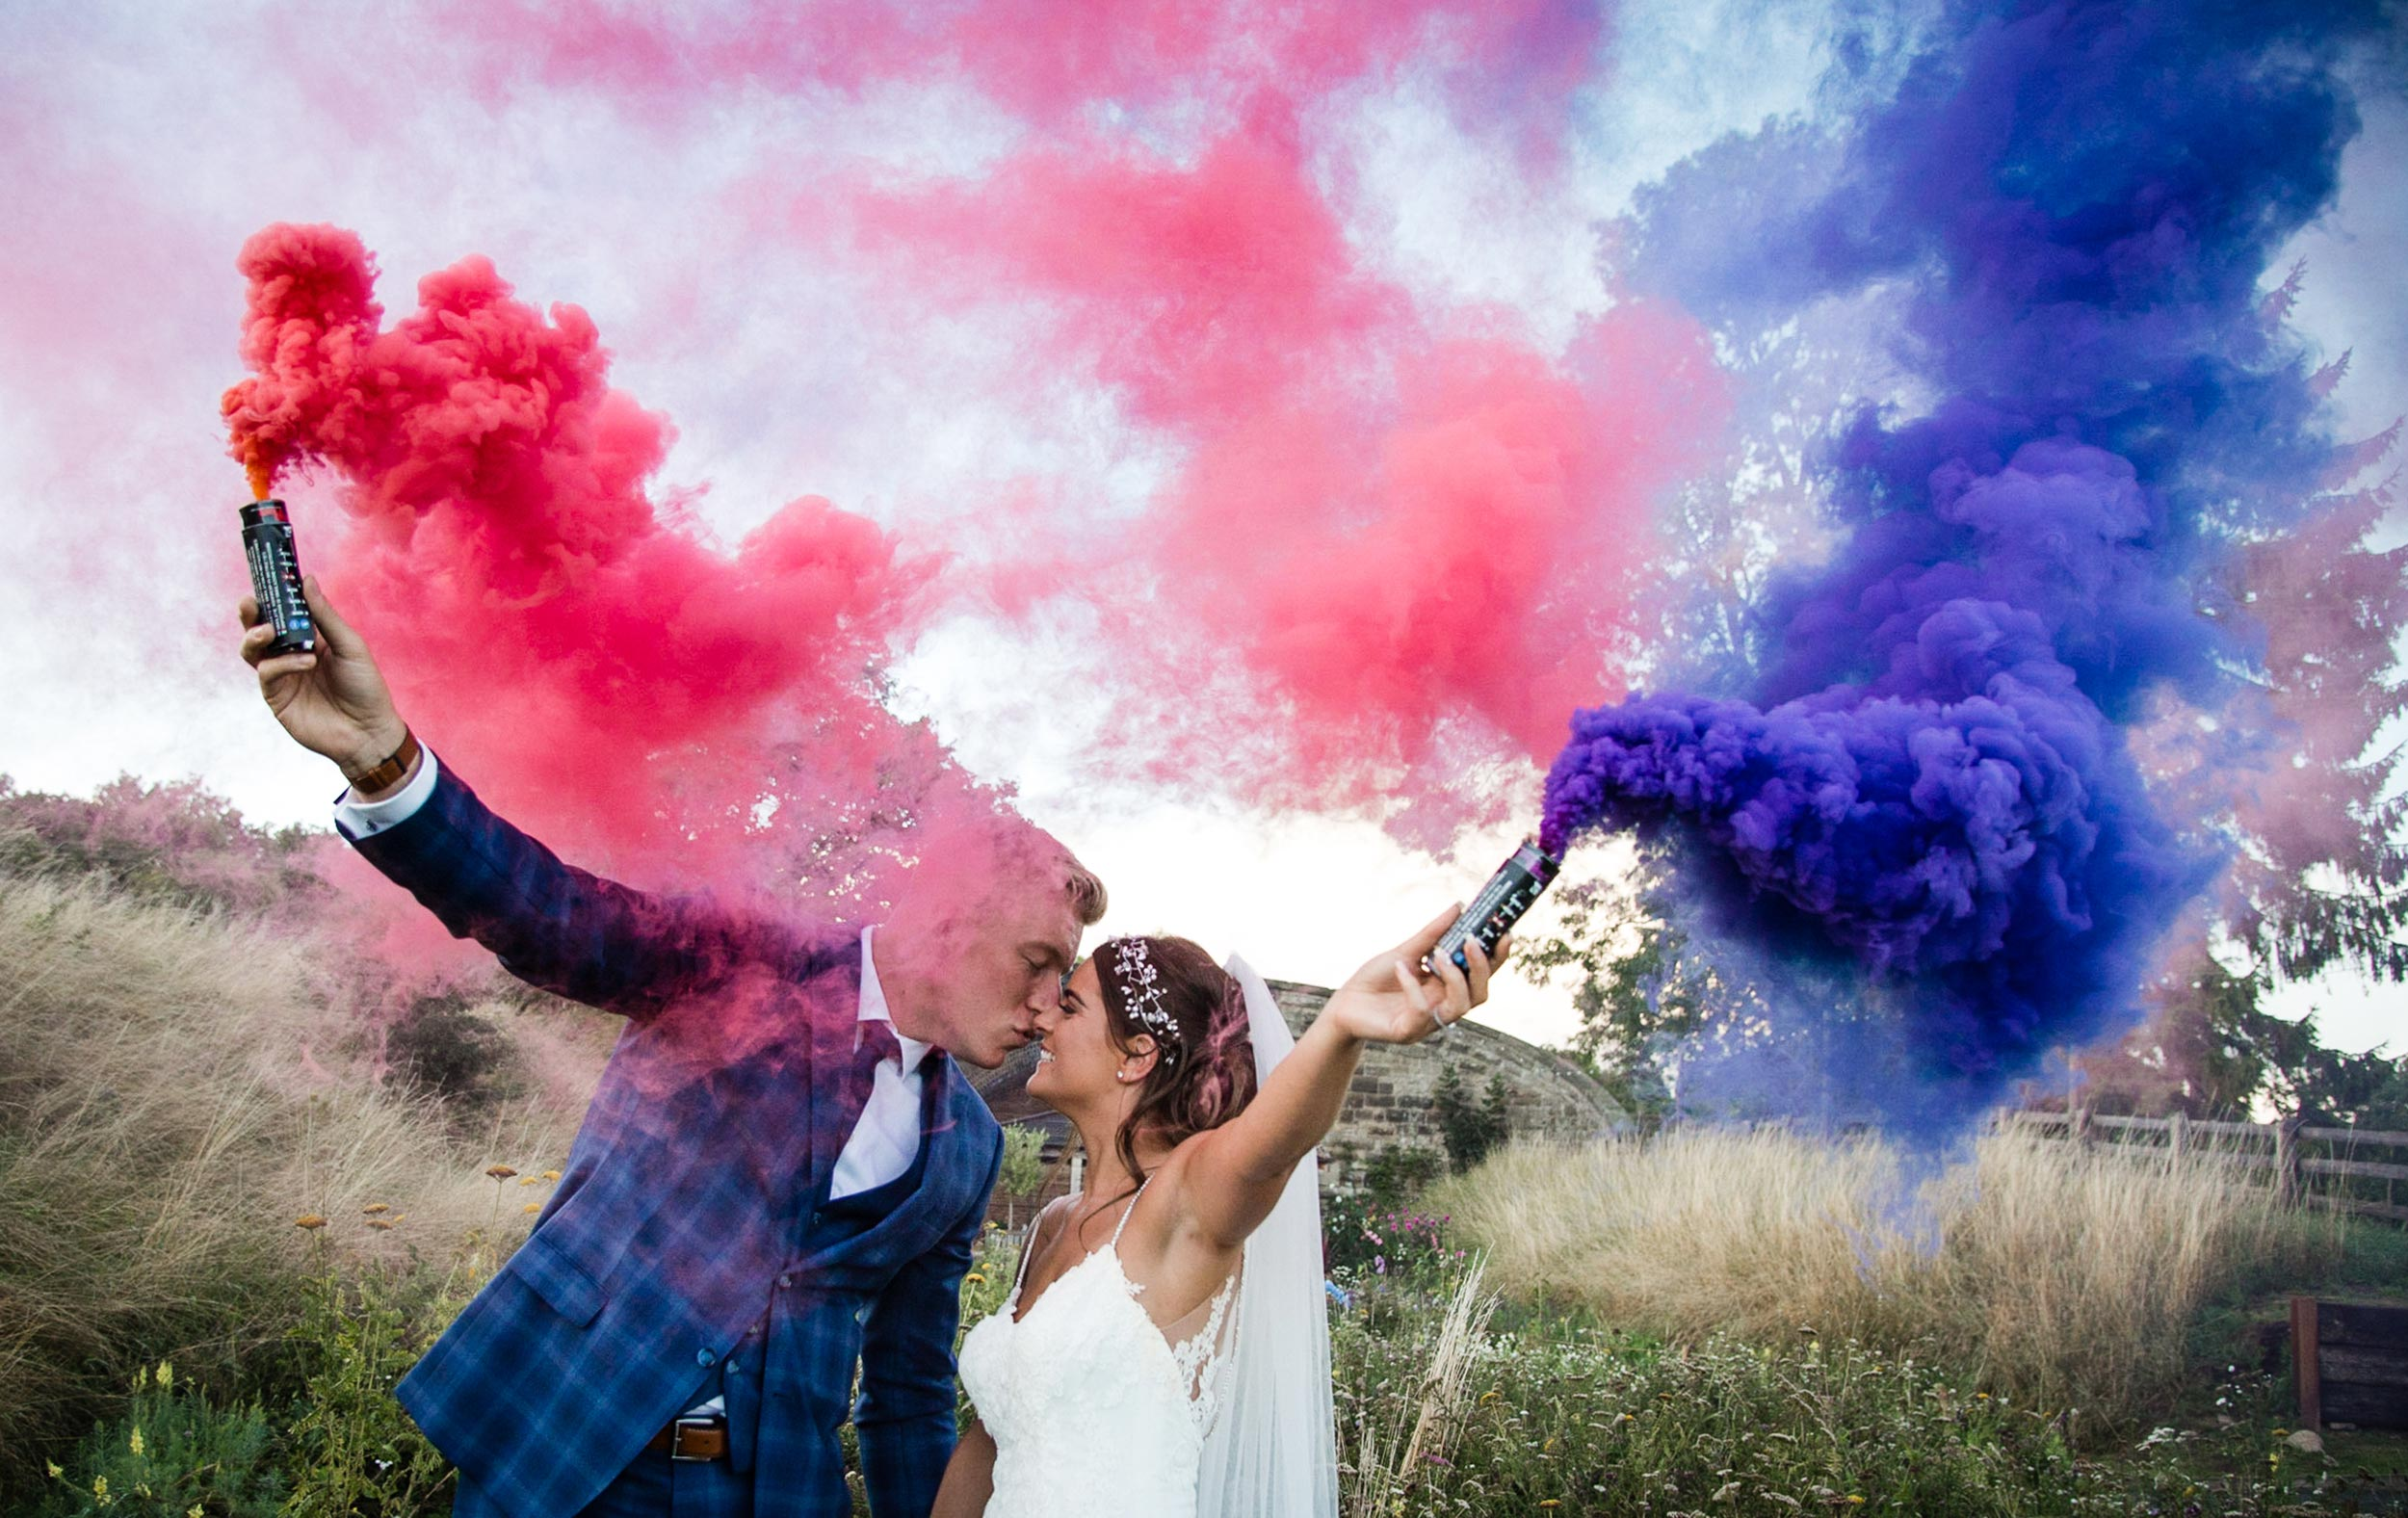 wedding photography by Stacey Oliver at Tower Hill Barns during an outdoor ceremony using colourful smoke bombs